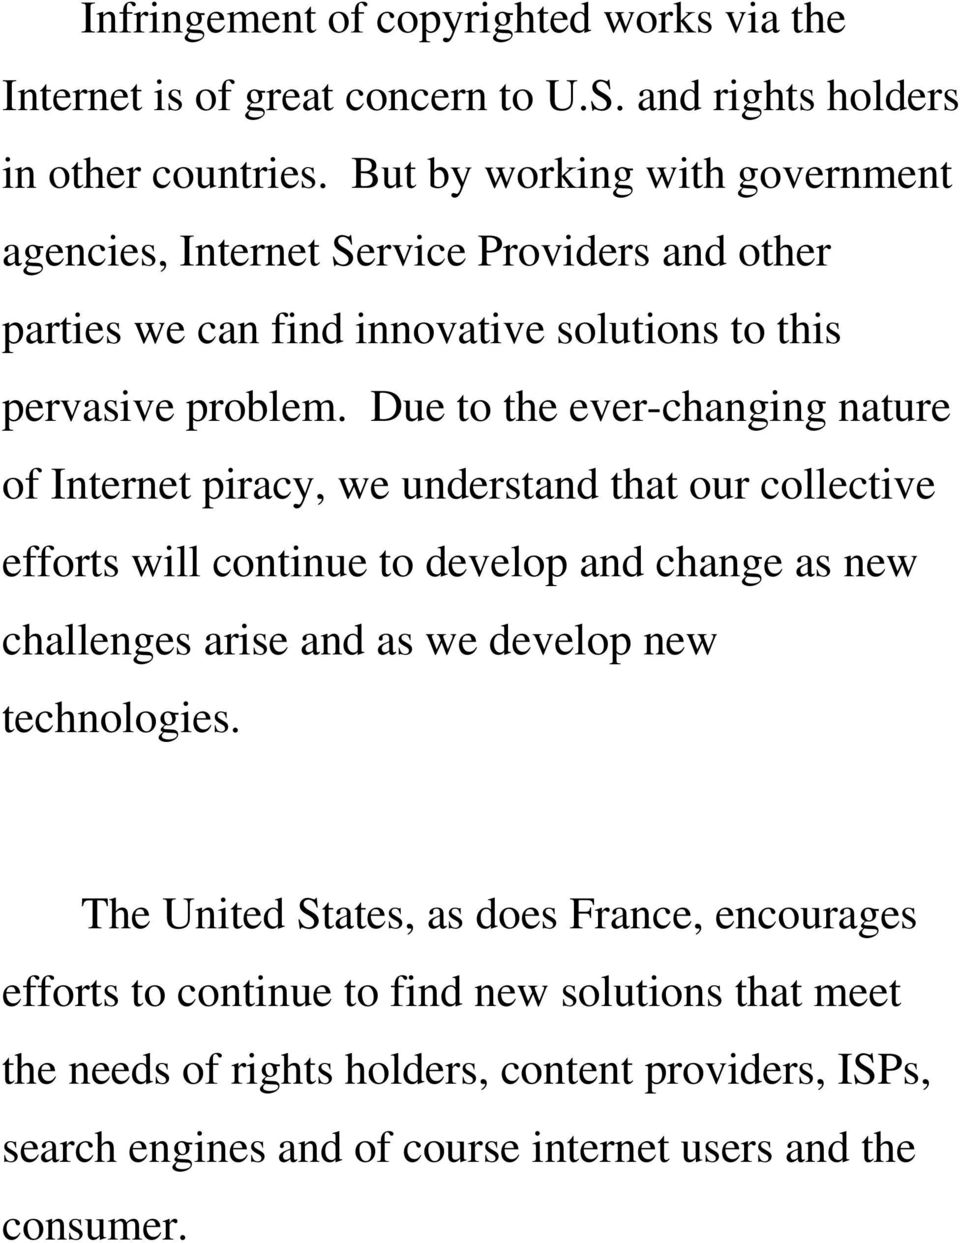 Due to the ever-changing nature of Internet piracy, we understand that our collective efforts will continue to develop and change as new challenges arise and as we